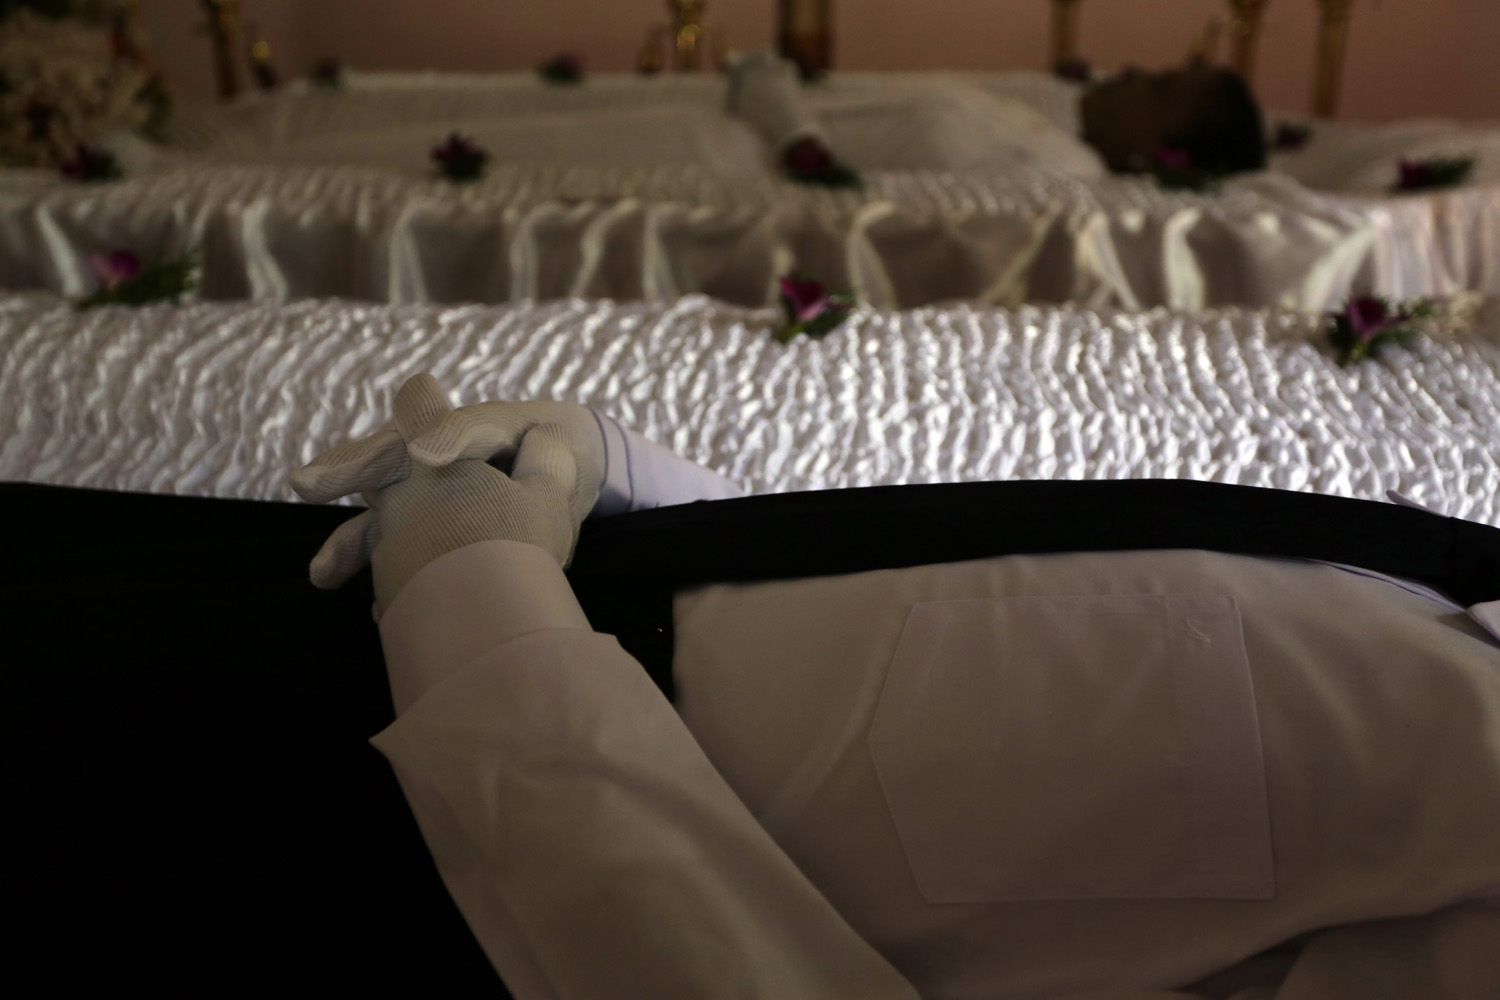 Jun. 3, 2014. The bodies of a Sri Lankan husband and wife Chula De Lenora and Dast De Lenora, lie in state for their final rites at Wellipanna, Sri Lanka.